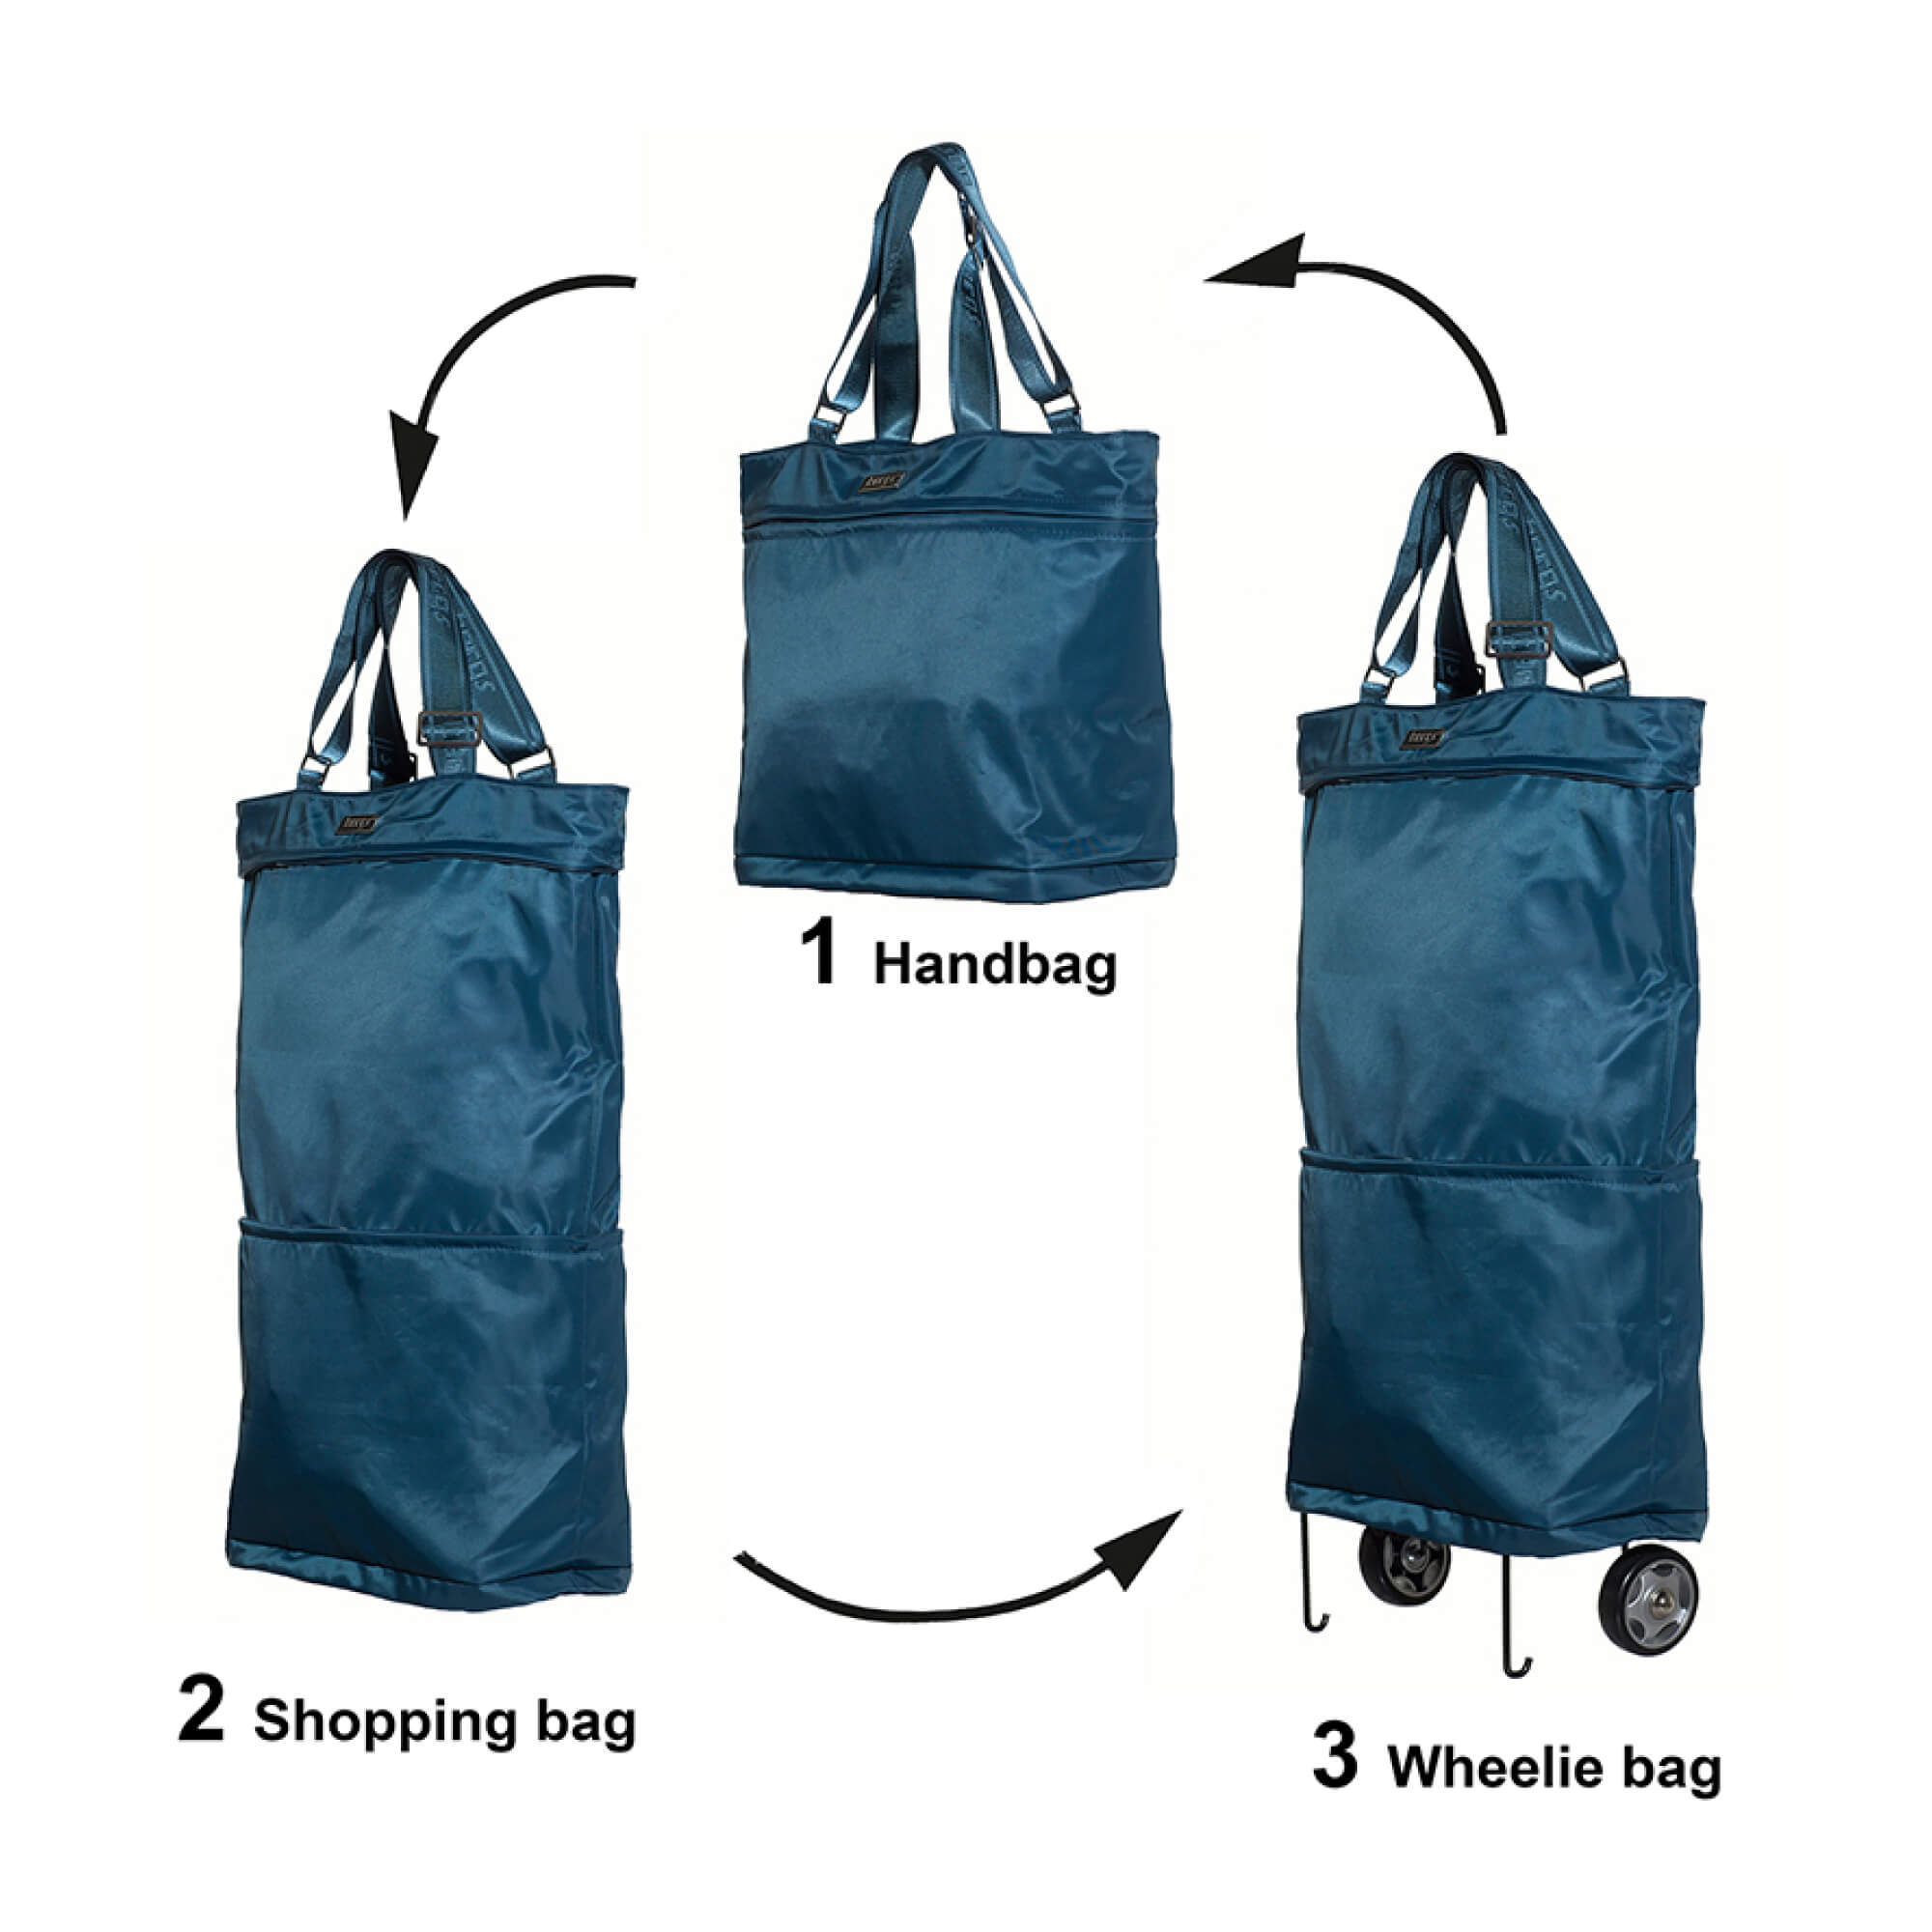 The Bergs3in1 bag with three easily changeable sizes in one.